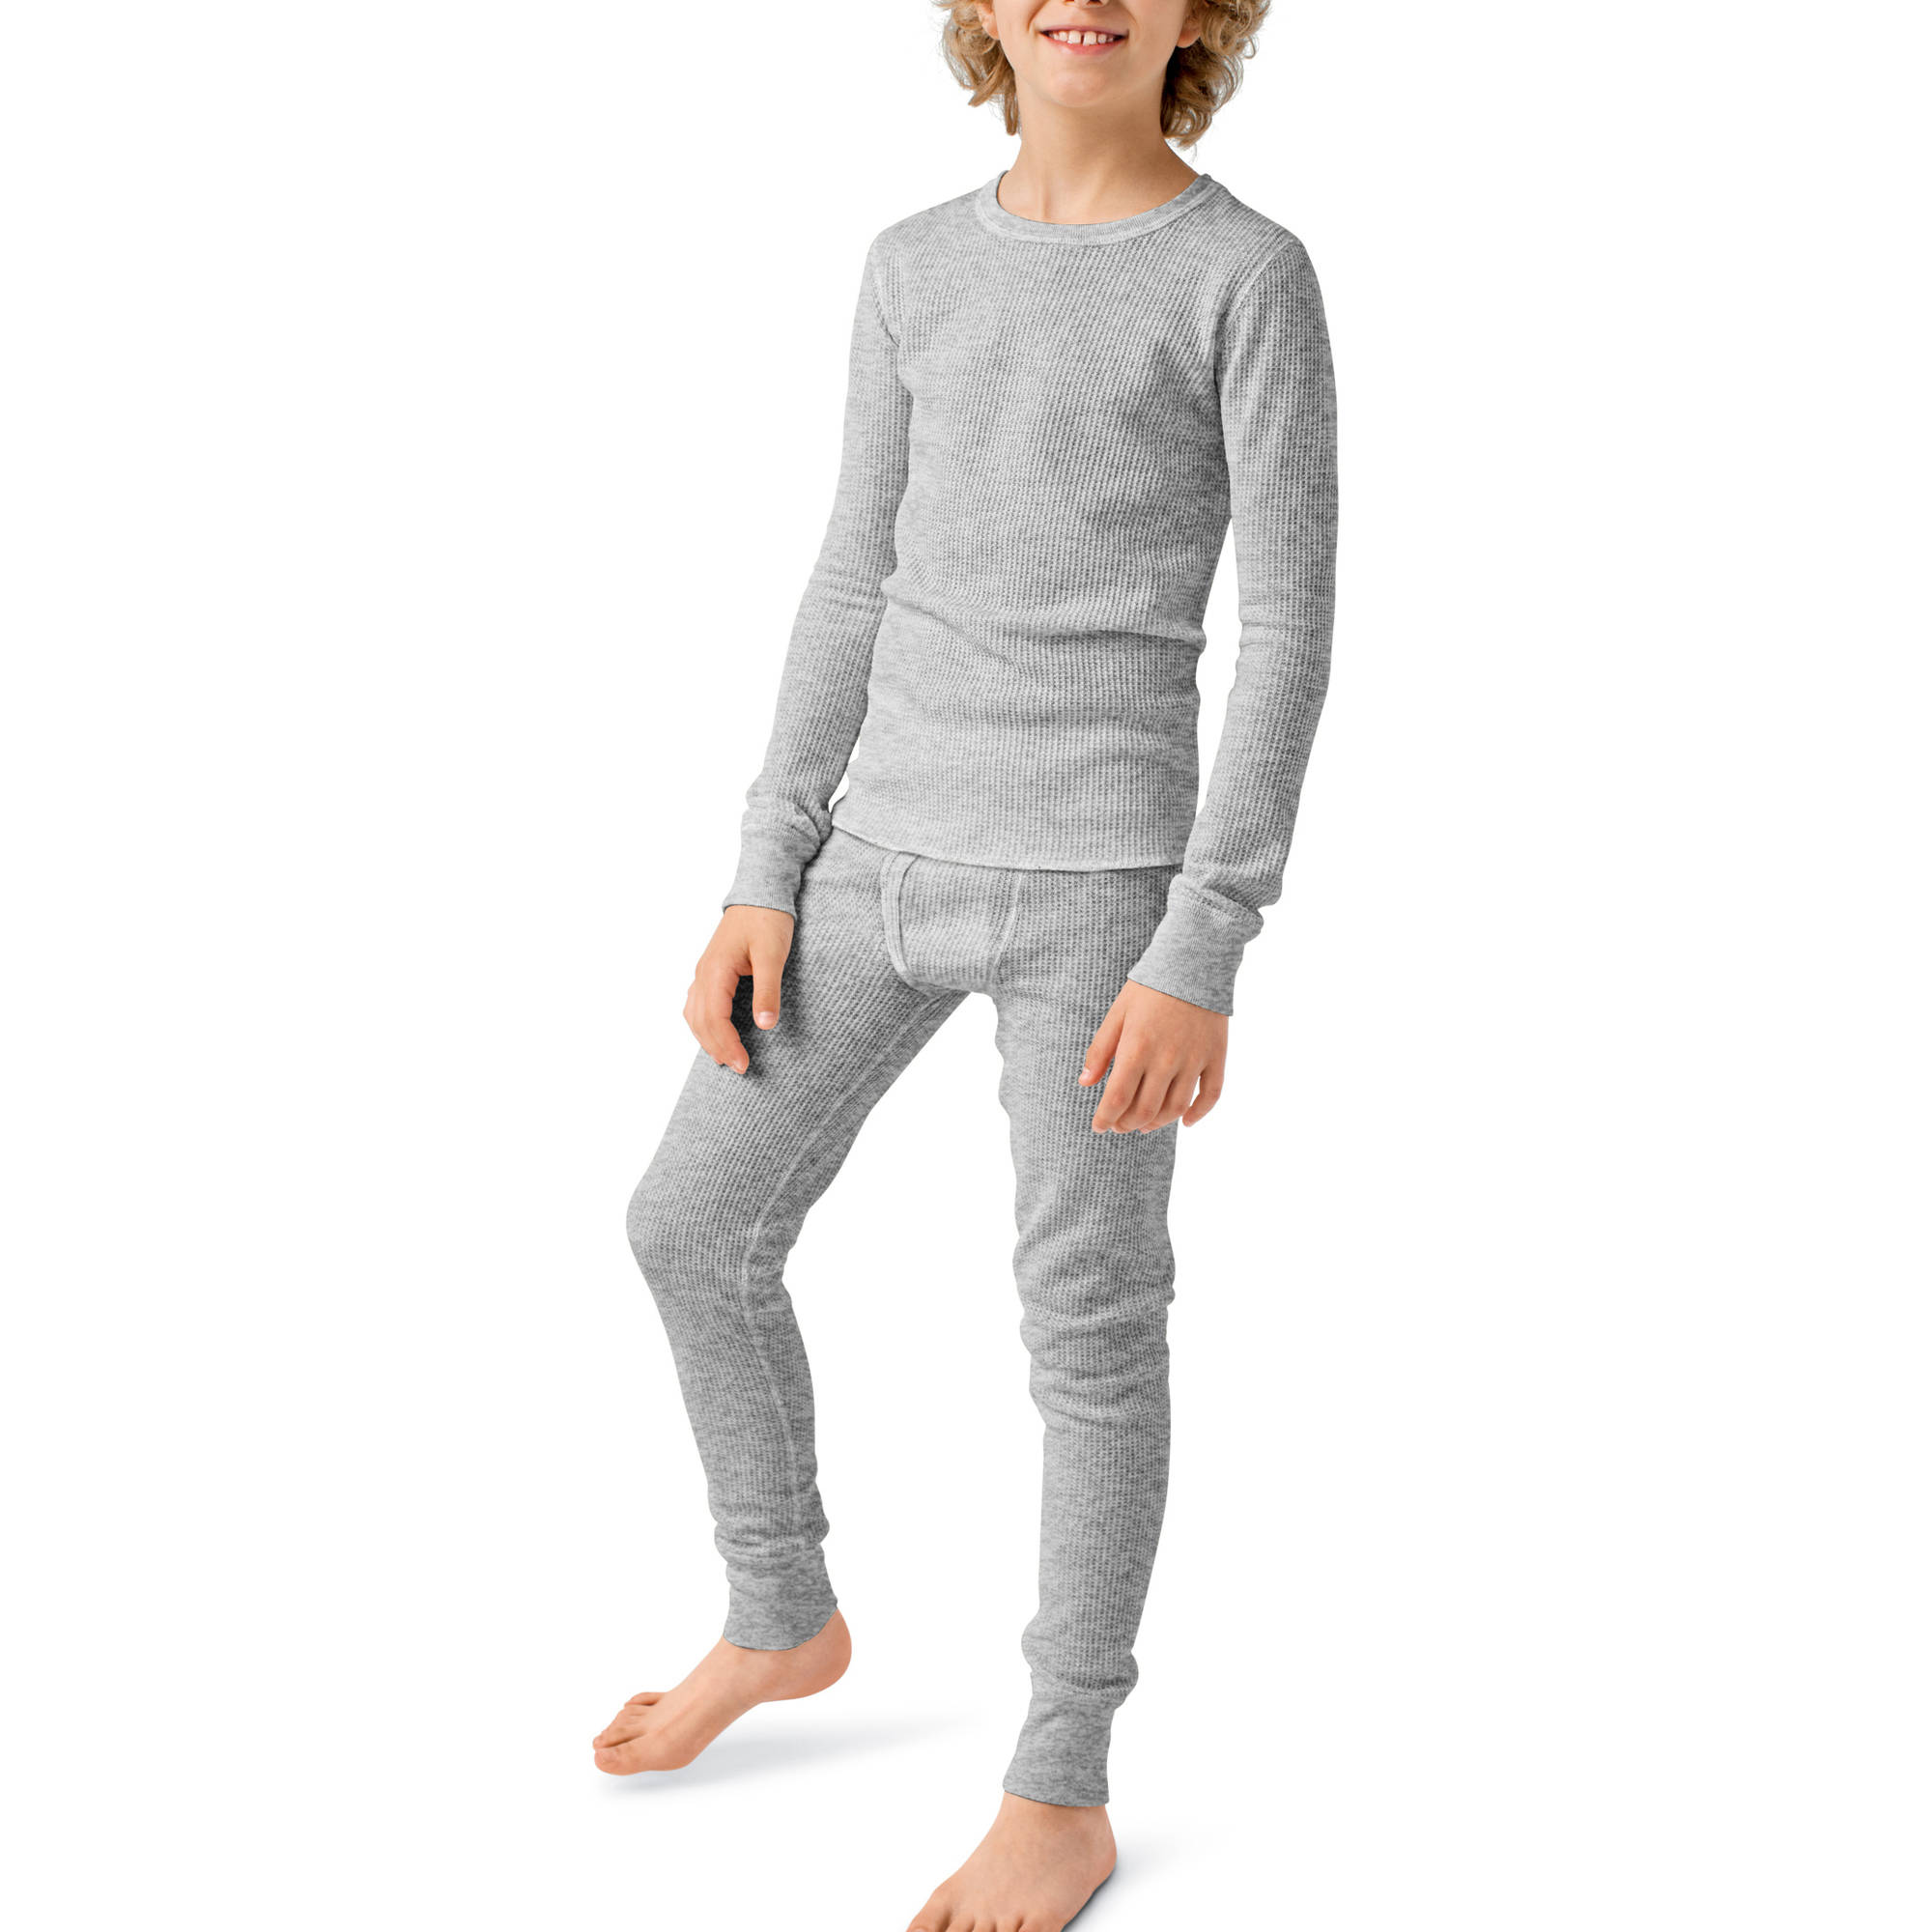 Home Boys Pajamas Long Johns. Long Johns. items Filter Quick Buy Long John Pajamas In Organic Cotton $ $ Free Shipping $+ More Colors Quick Buy Long John Pajamas In Organic Cotton $ $ Free Shipping $+ More Colors Quick Buy Long John Pajamas In Organic Cotton.